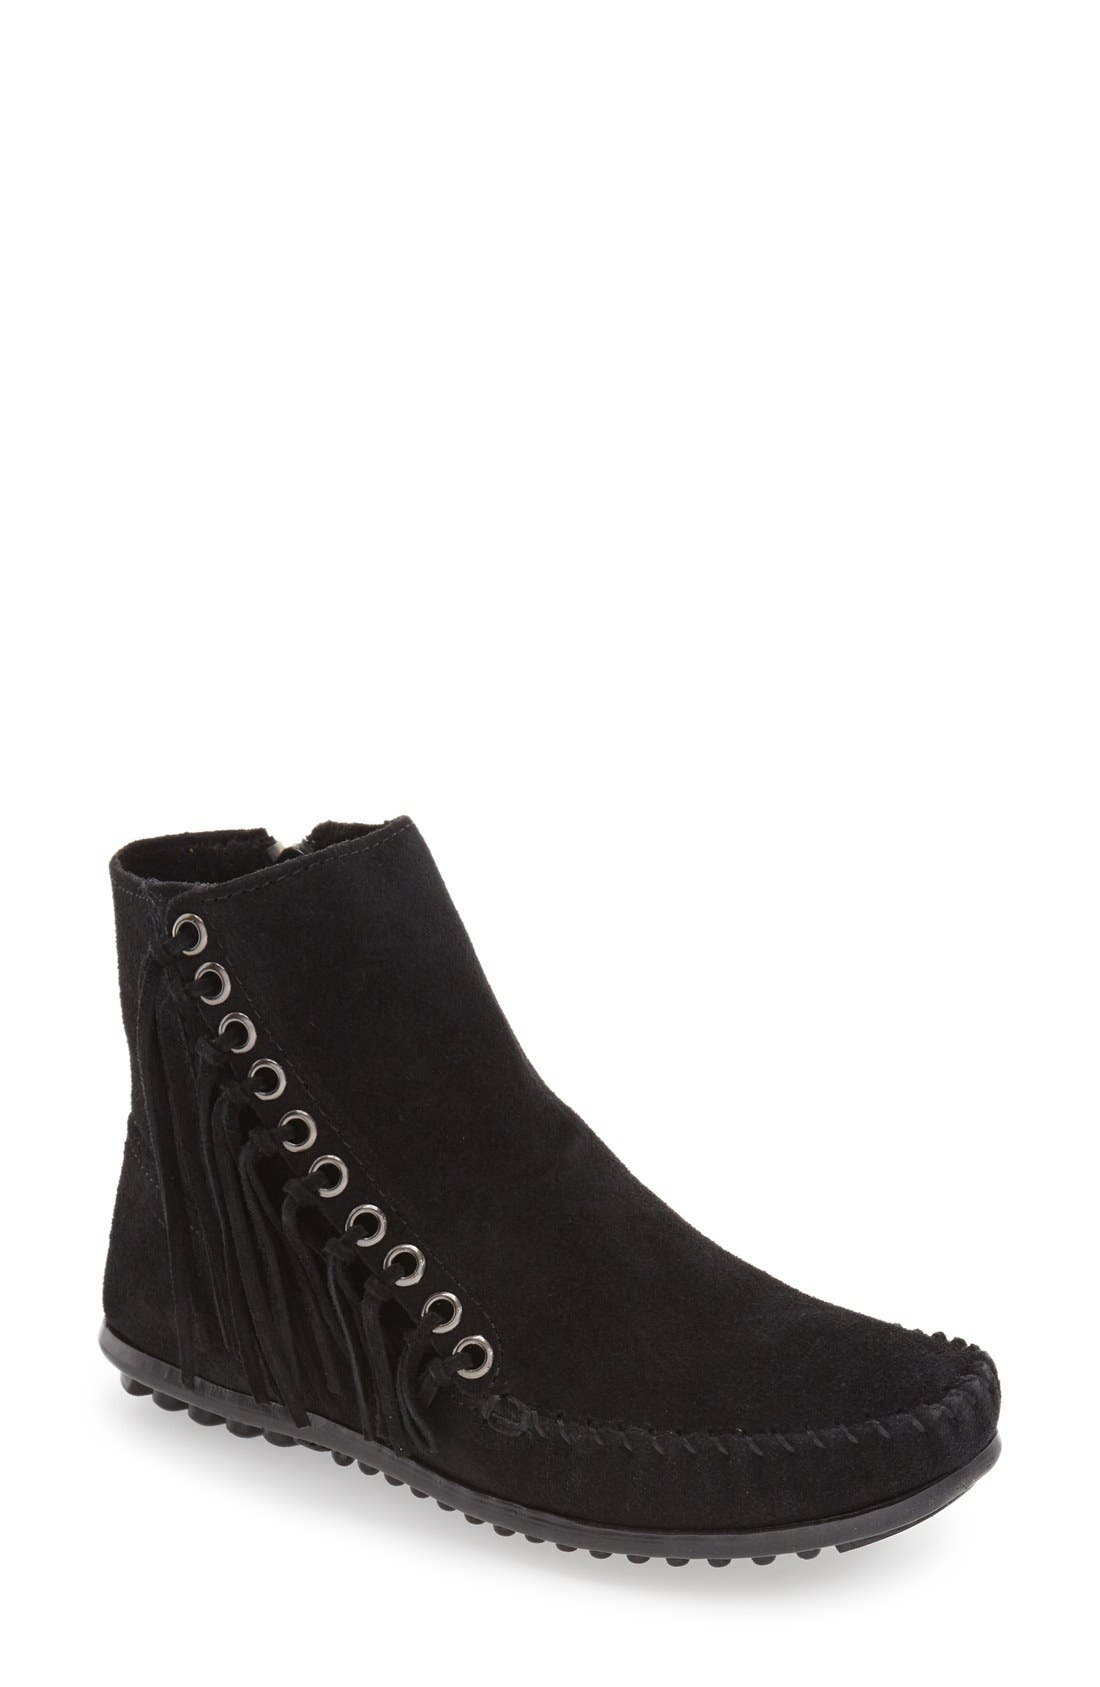 MINNETONKA 'Willow' Fringe Bootie